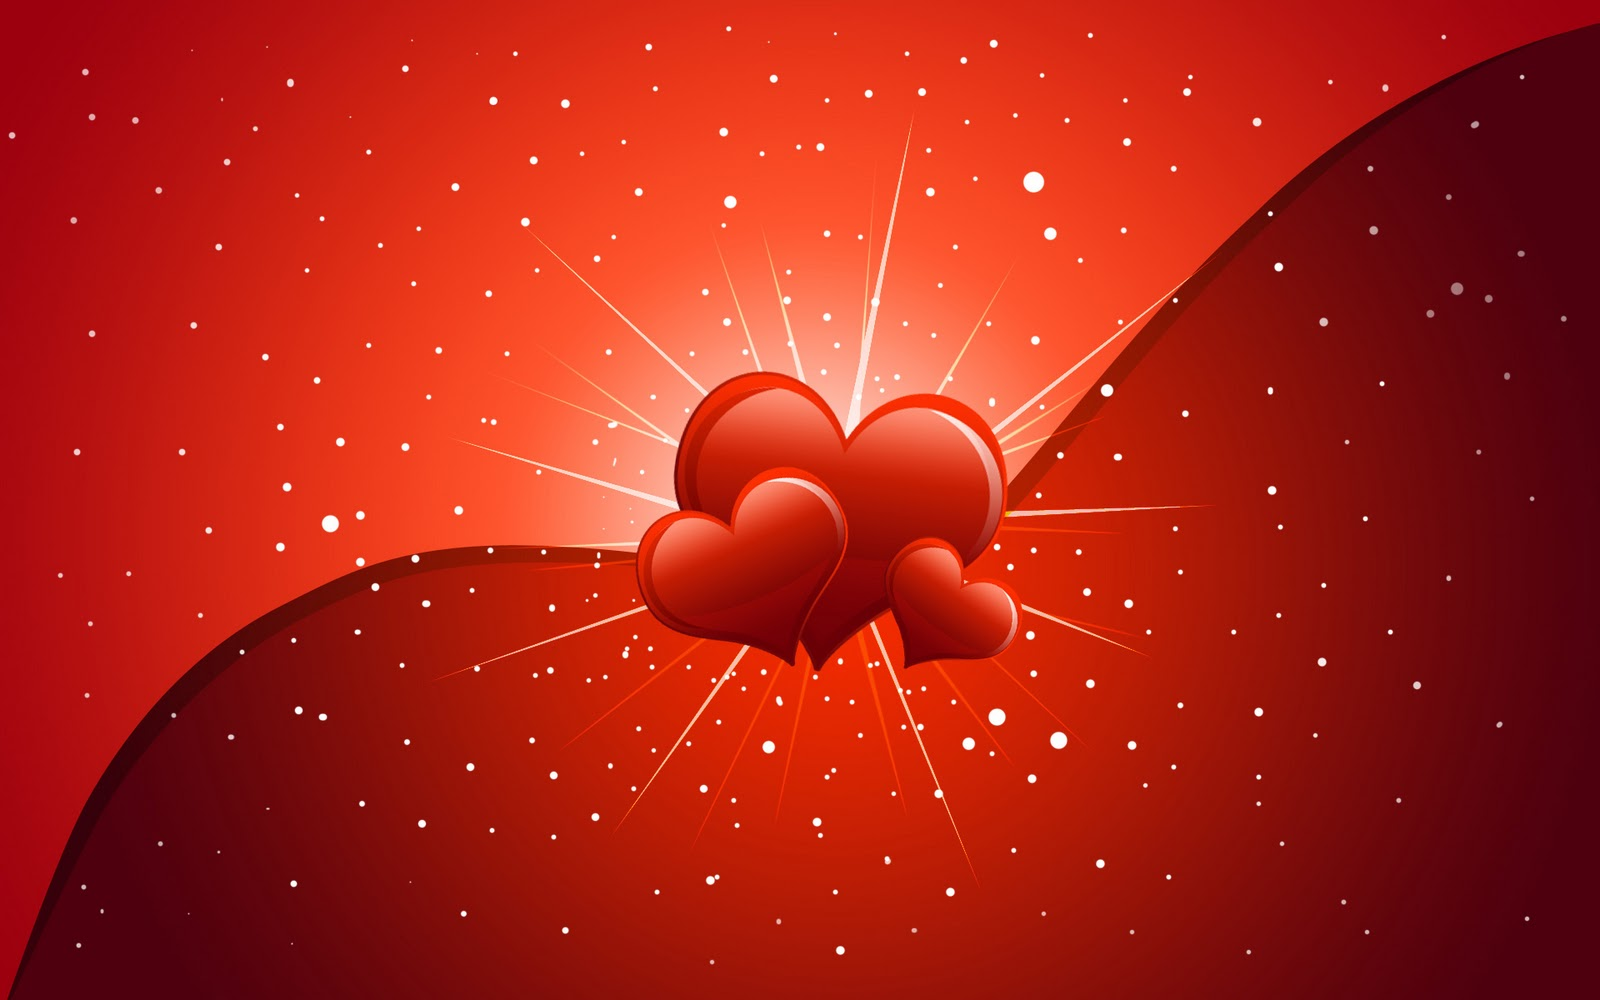 Love Wallpapers Valentine Day : Free Desktop Wallpapers Backgrounds: Valentine Wallpapers, Love Backgrounds for computer